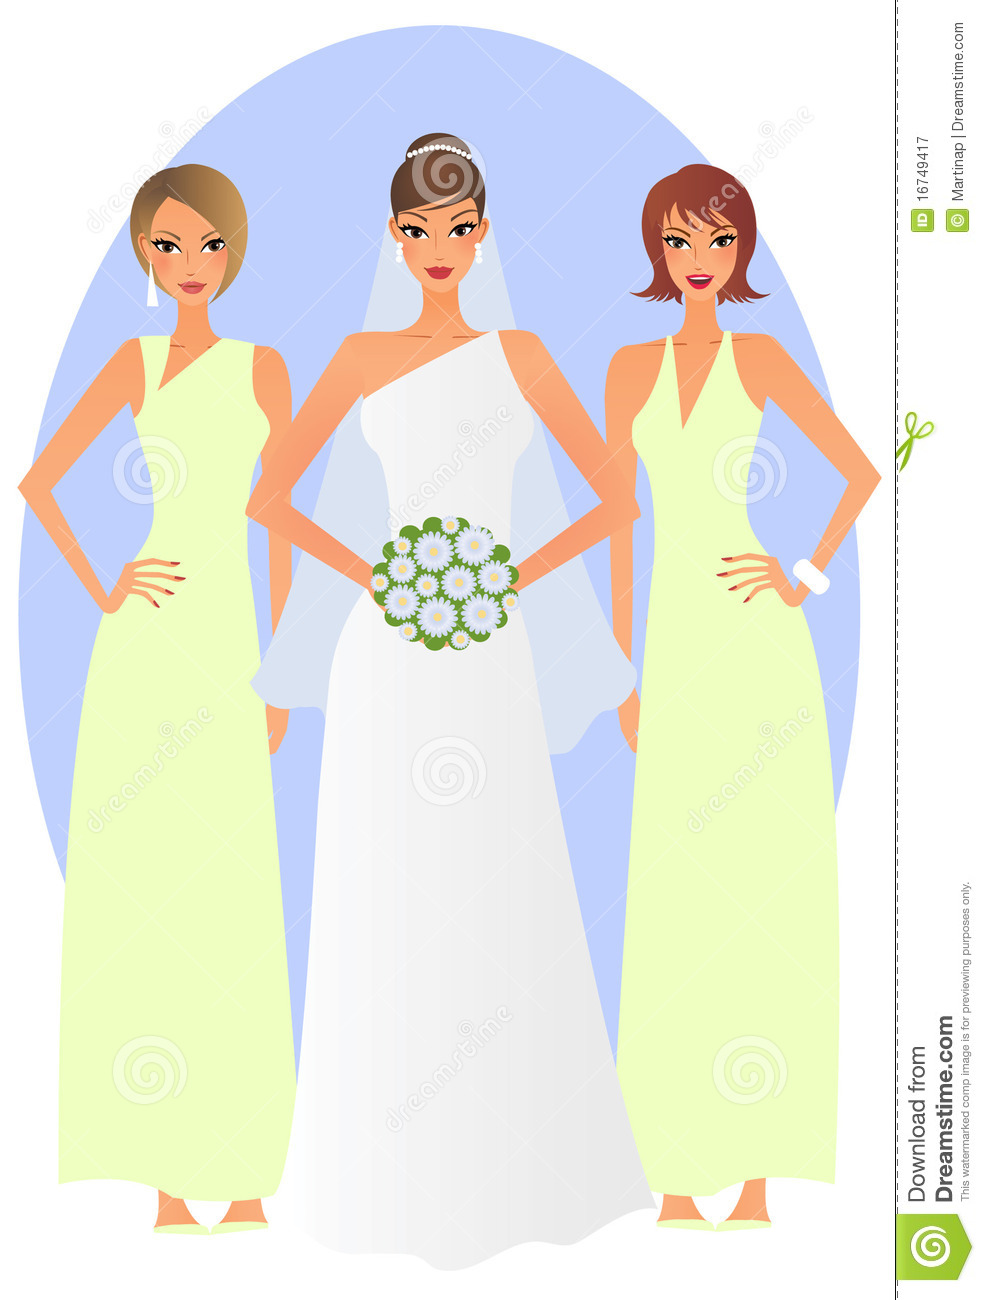 Bride and bridesmaids stock illustration. Illustration of attractive.